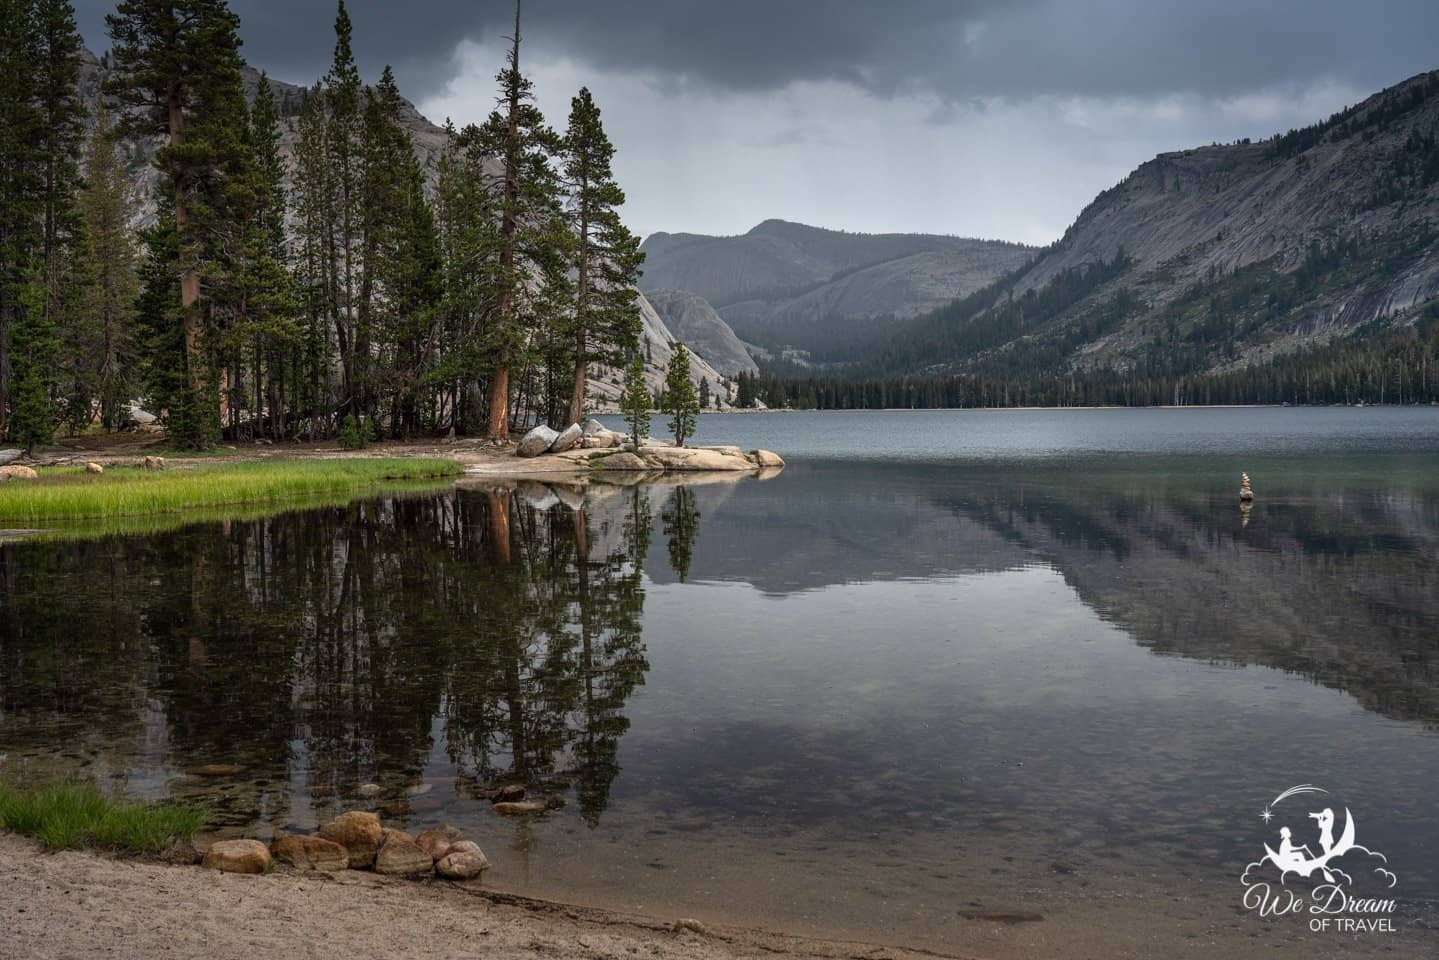 Even on a moody day, Tenaya Lake is the perfect place on Tioga Pass Road for a picnic.